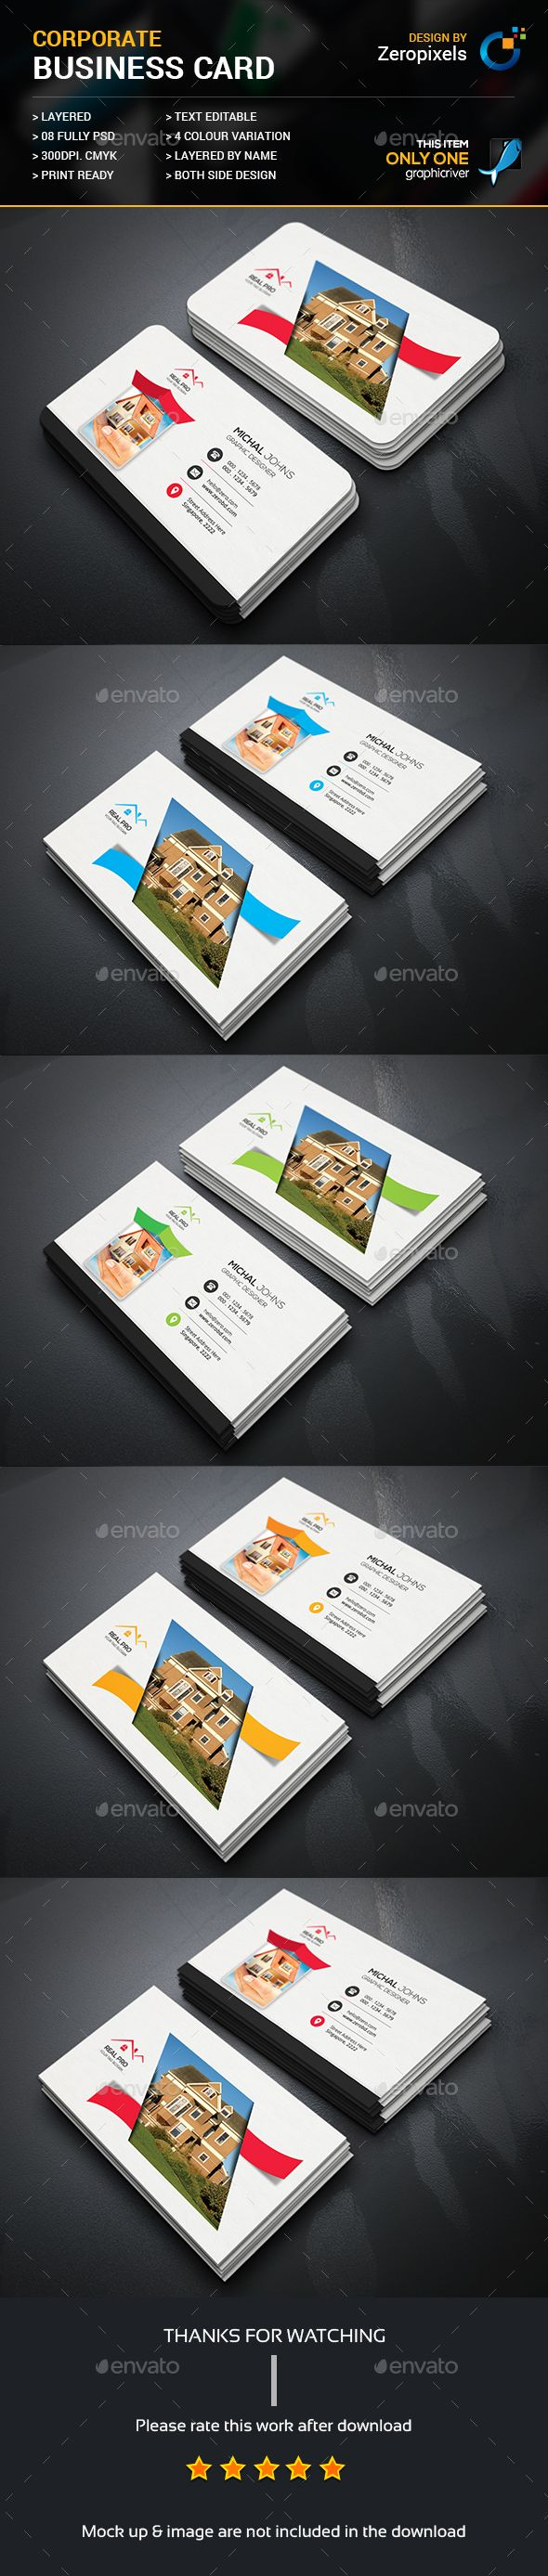 Real estate business card template psd download here https real estate business card template psd download here httpsgraphicriver reheart Choice Image